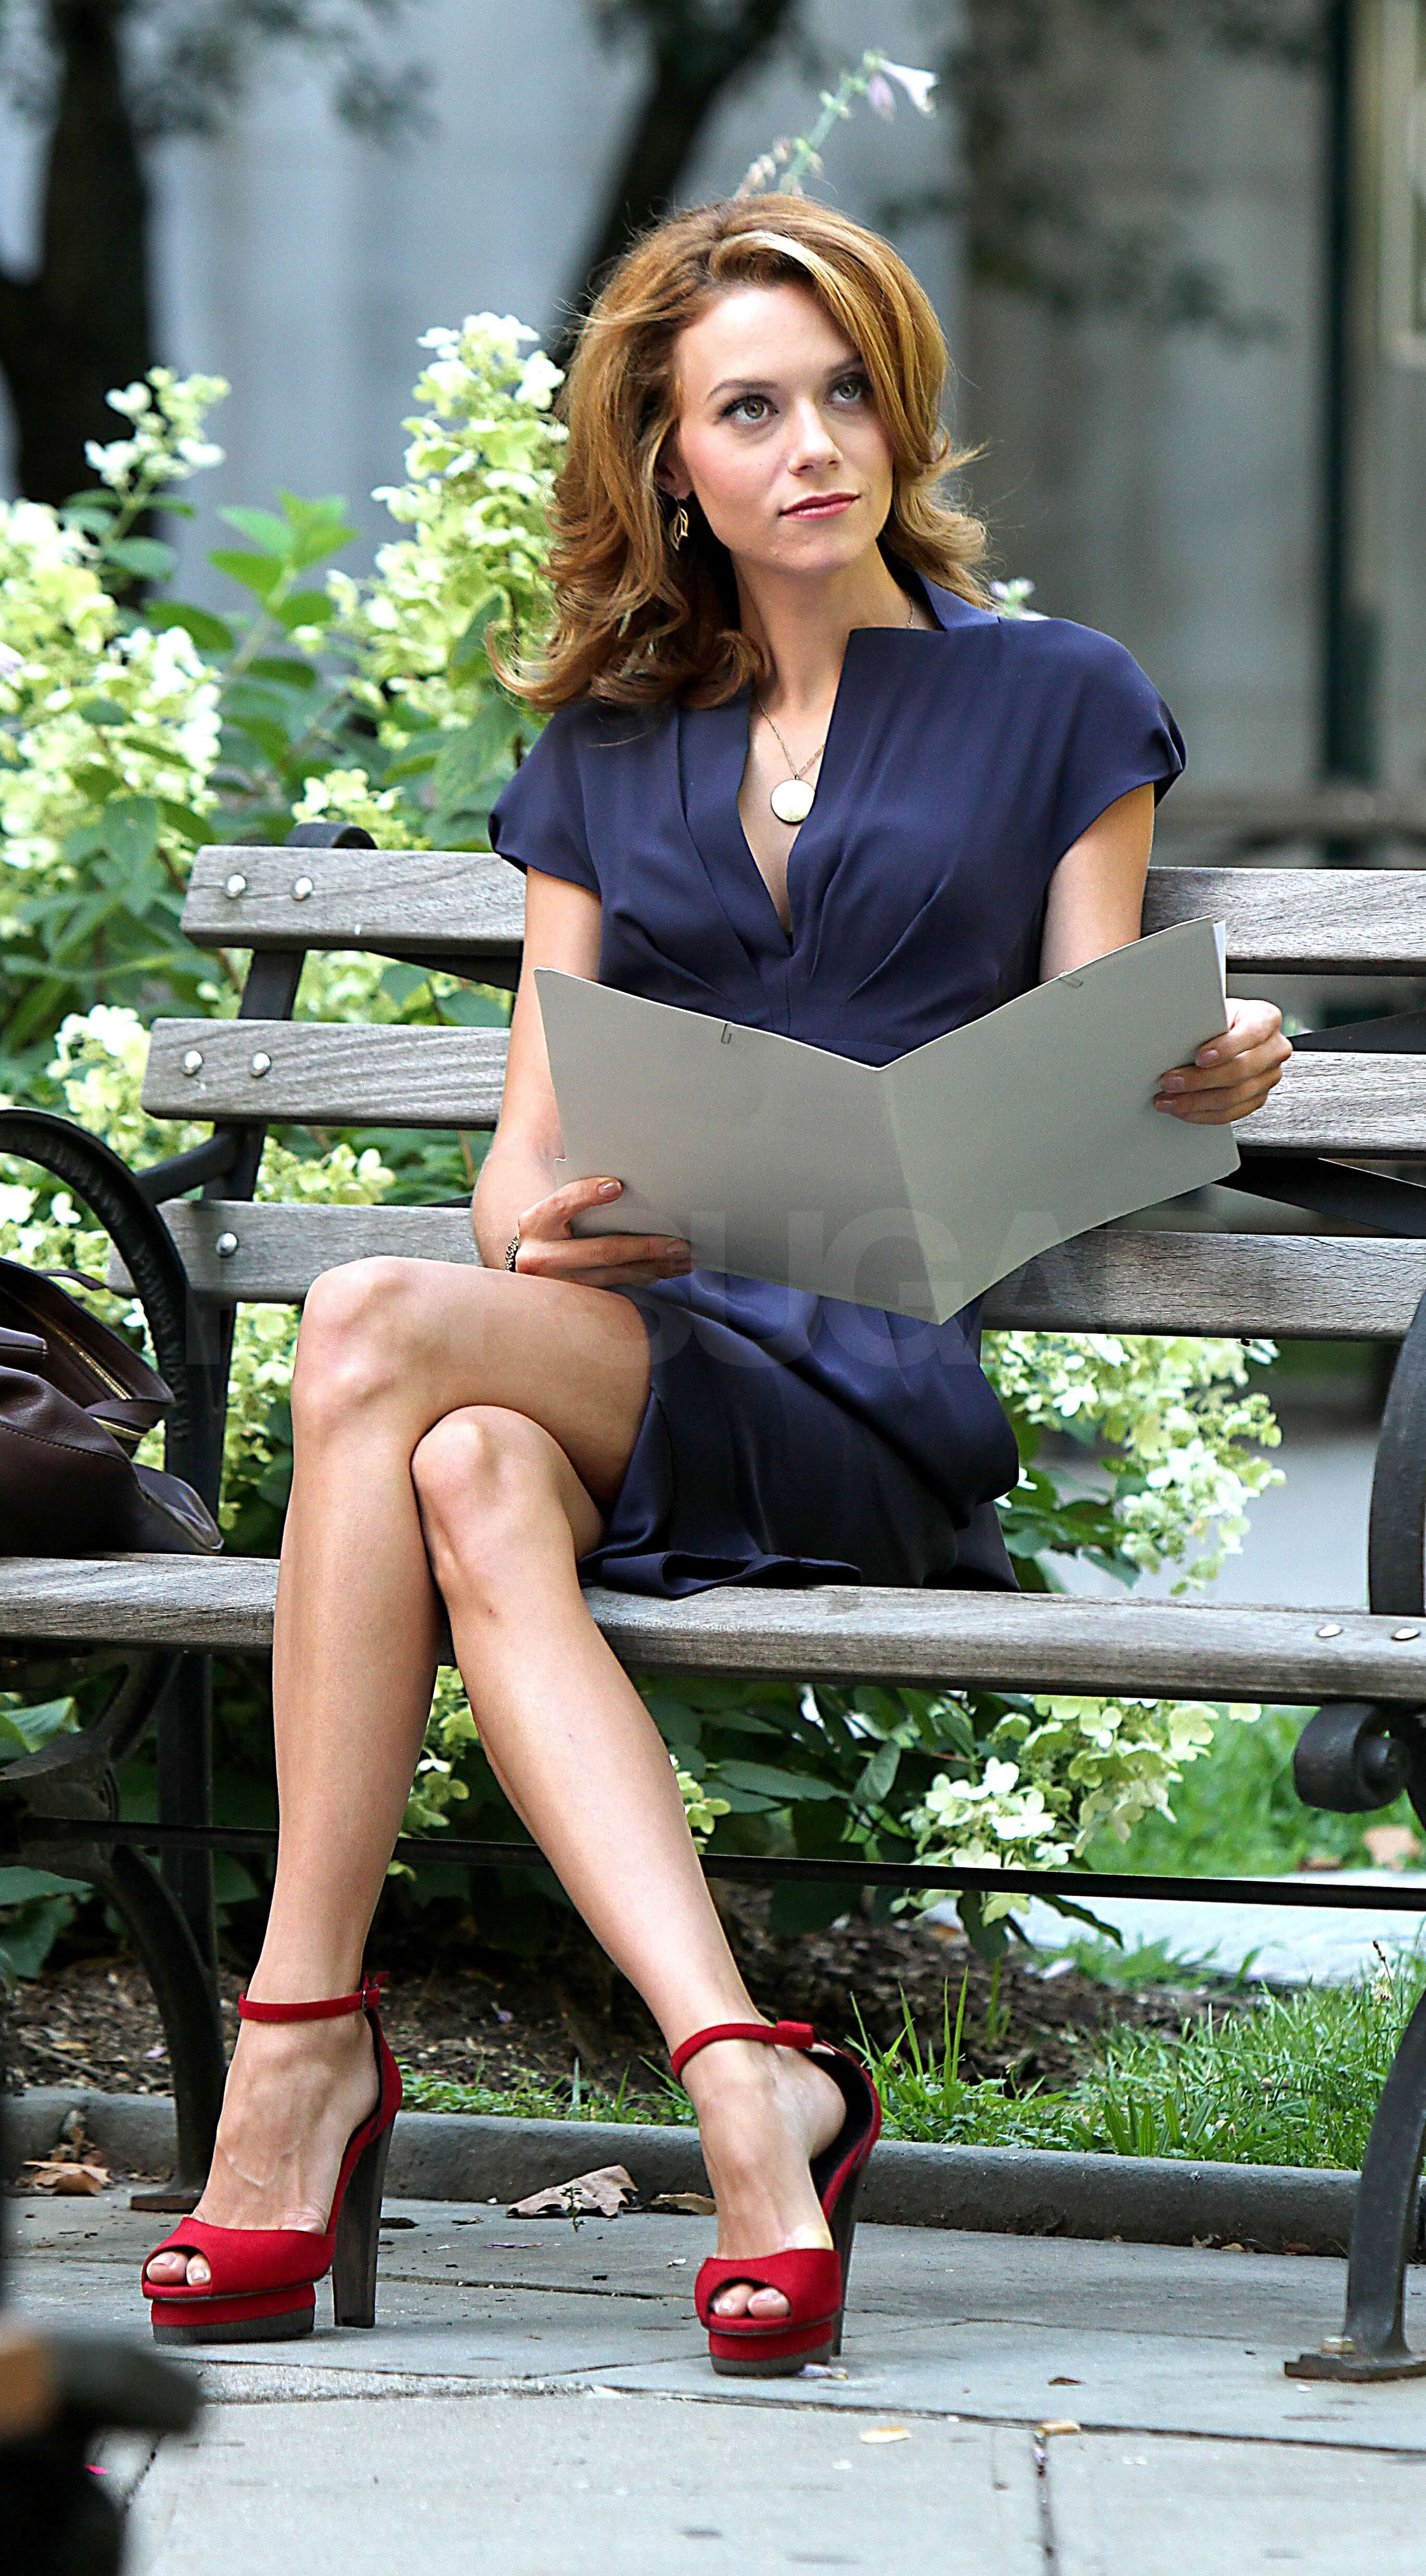 The Hottest Hilarie Burton Photos Will Prove That She Is One Of The Hottest Women In The World